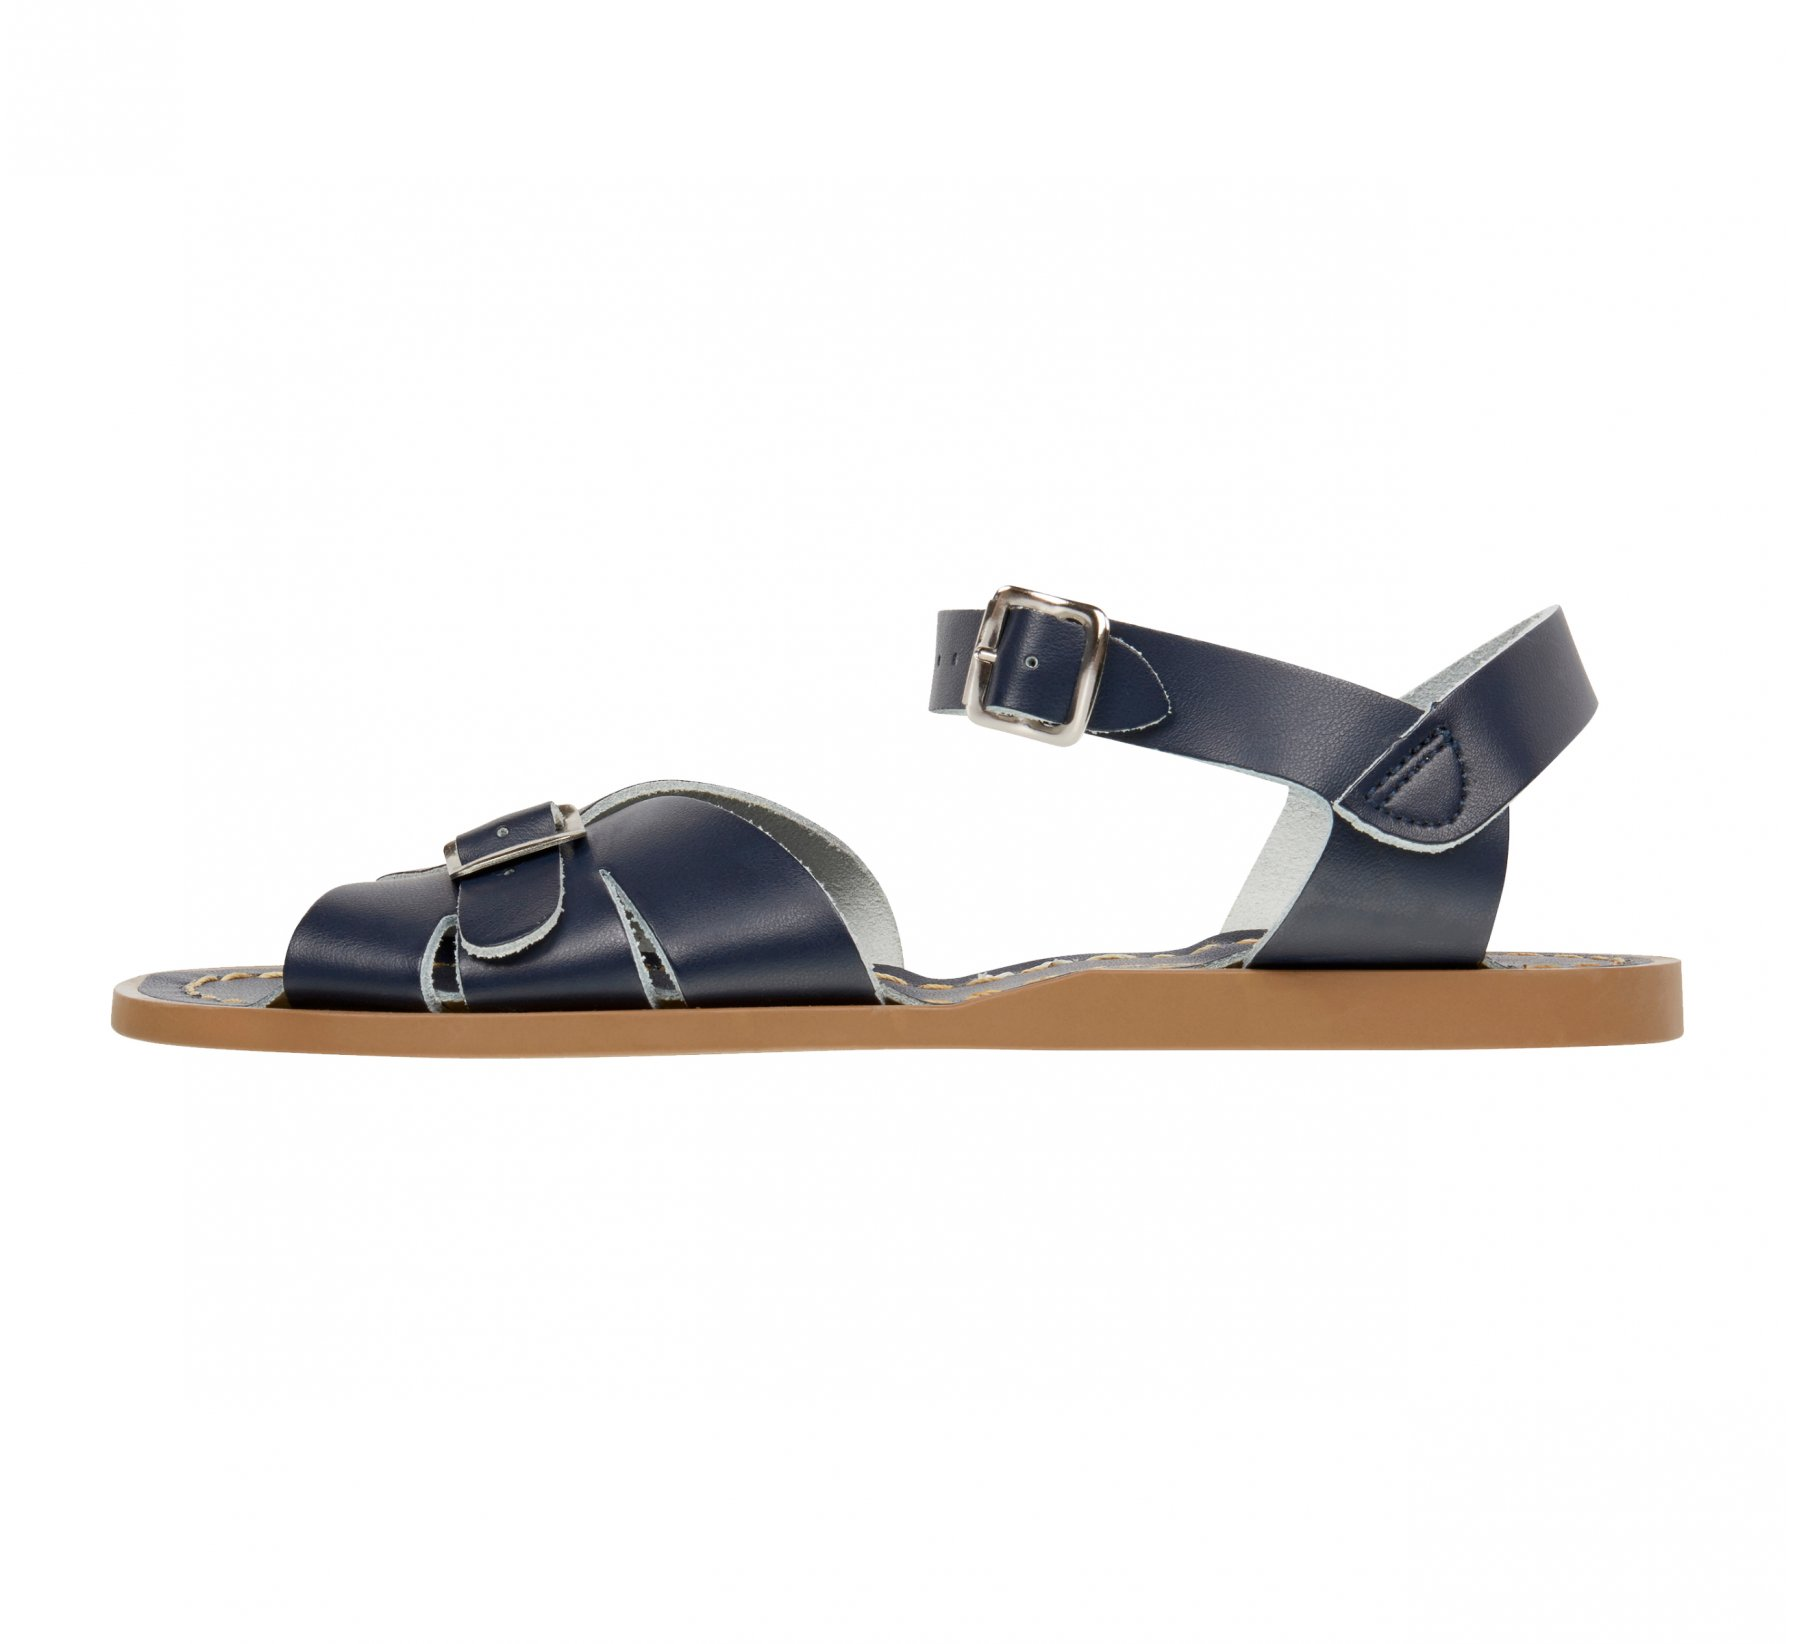 Classic Bleu Marine - Salt Water Sandals